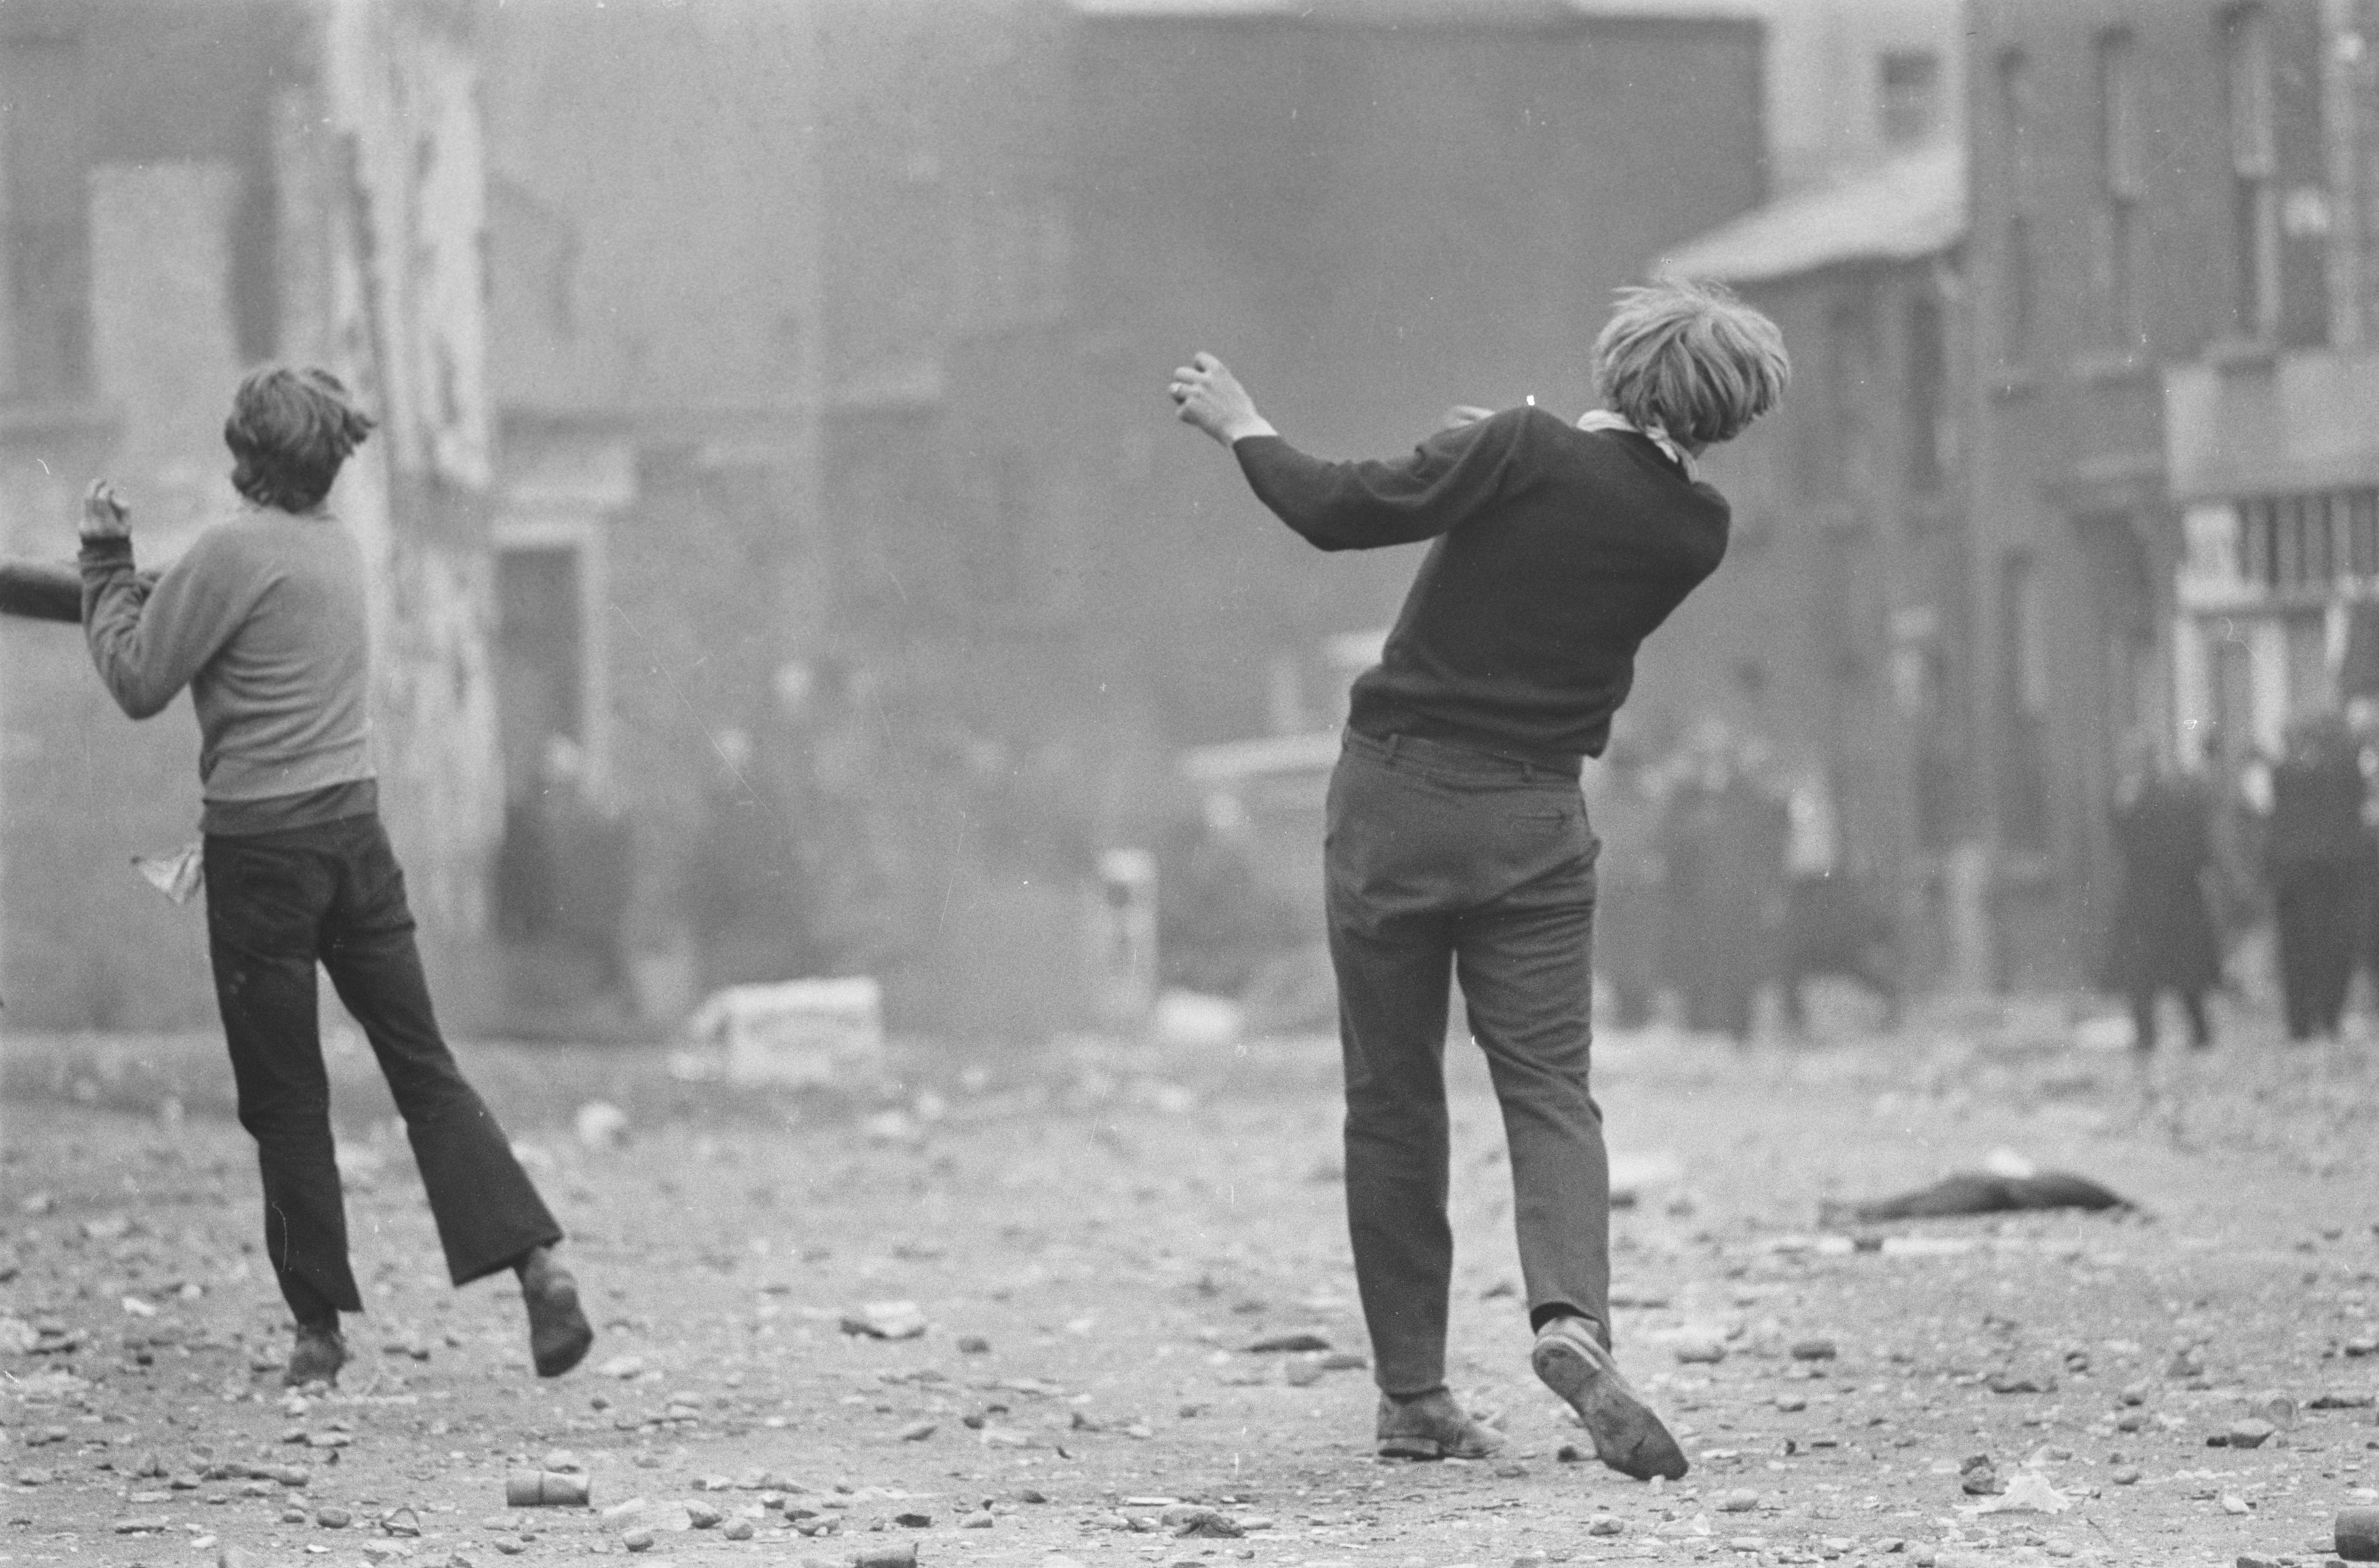 Gilles Caron, Londonderry, Irlande du Nord, août 1969, 1969 © Fondation Gilles Caron, courtesy School Gallery Olivier Castaing